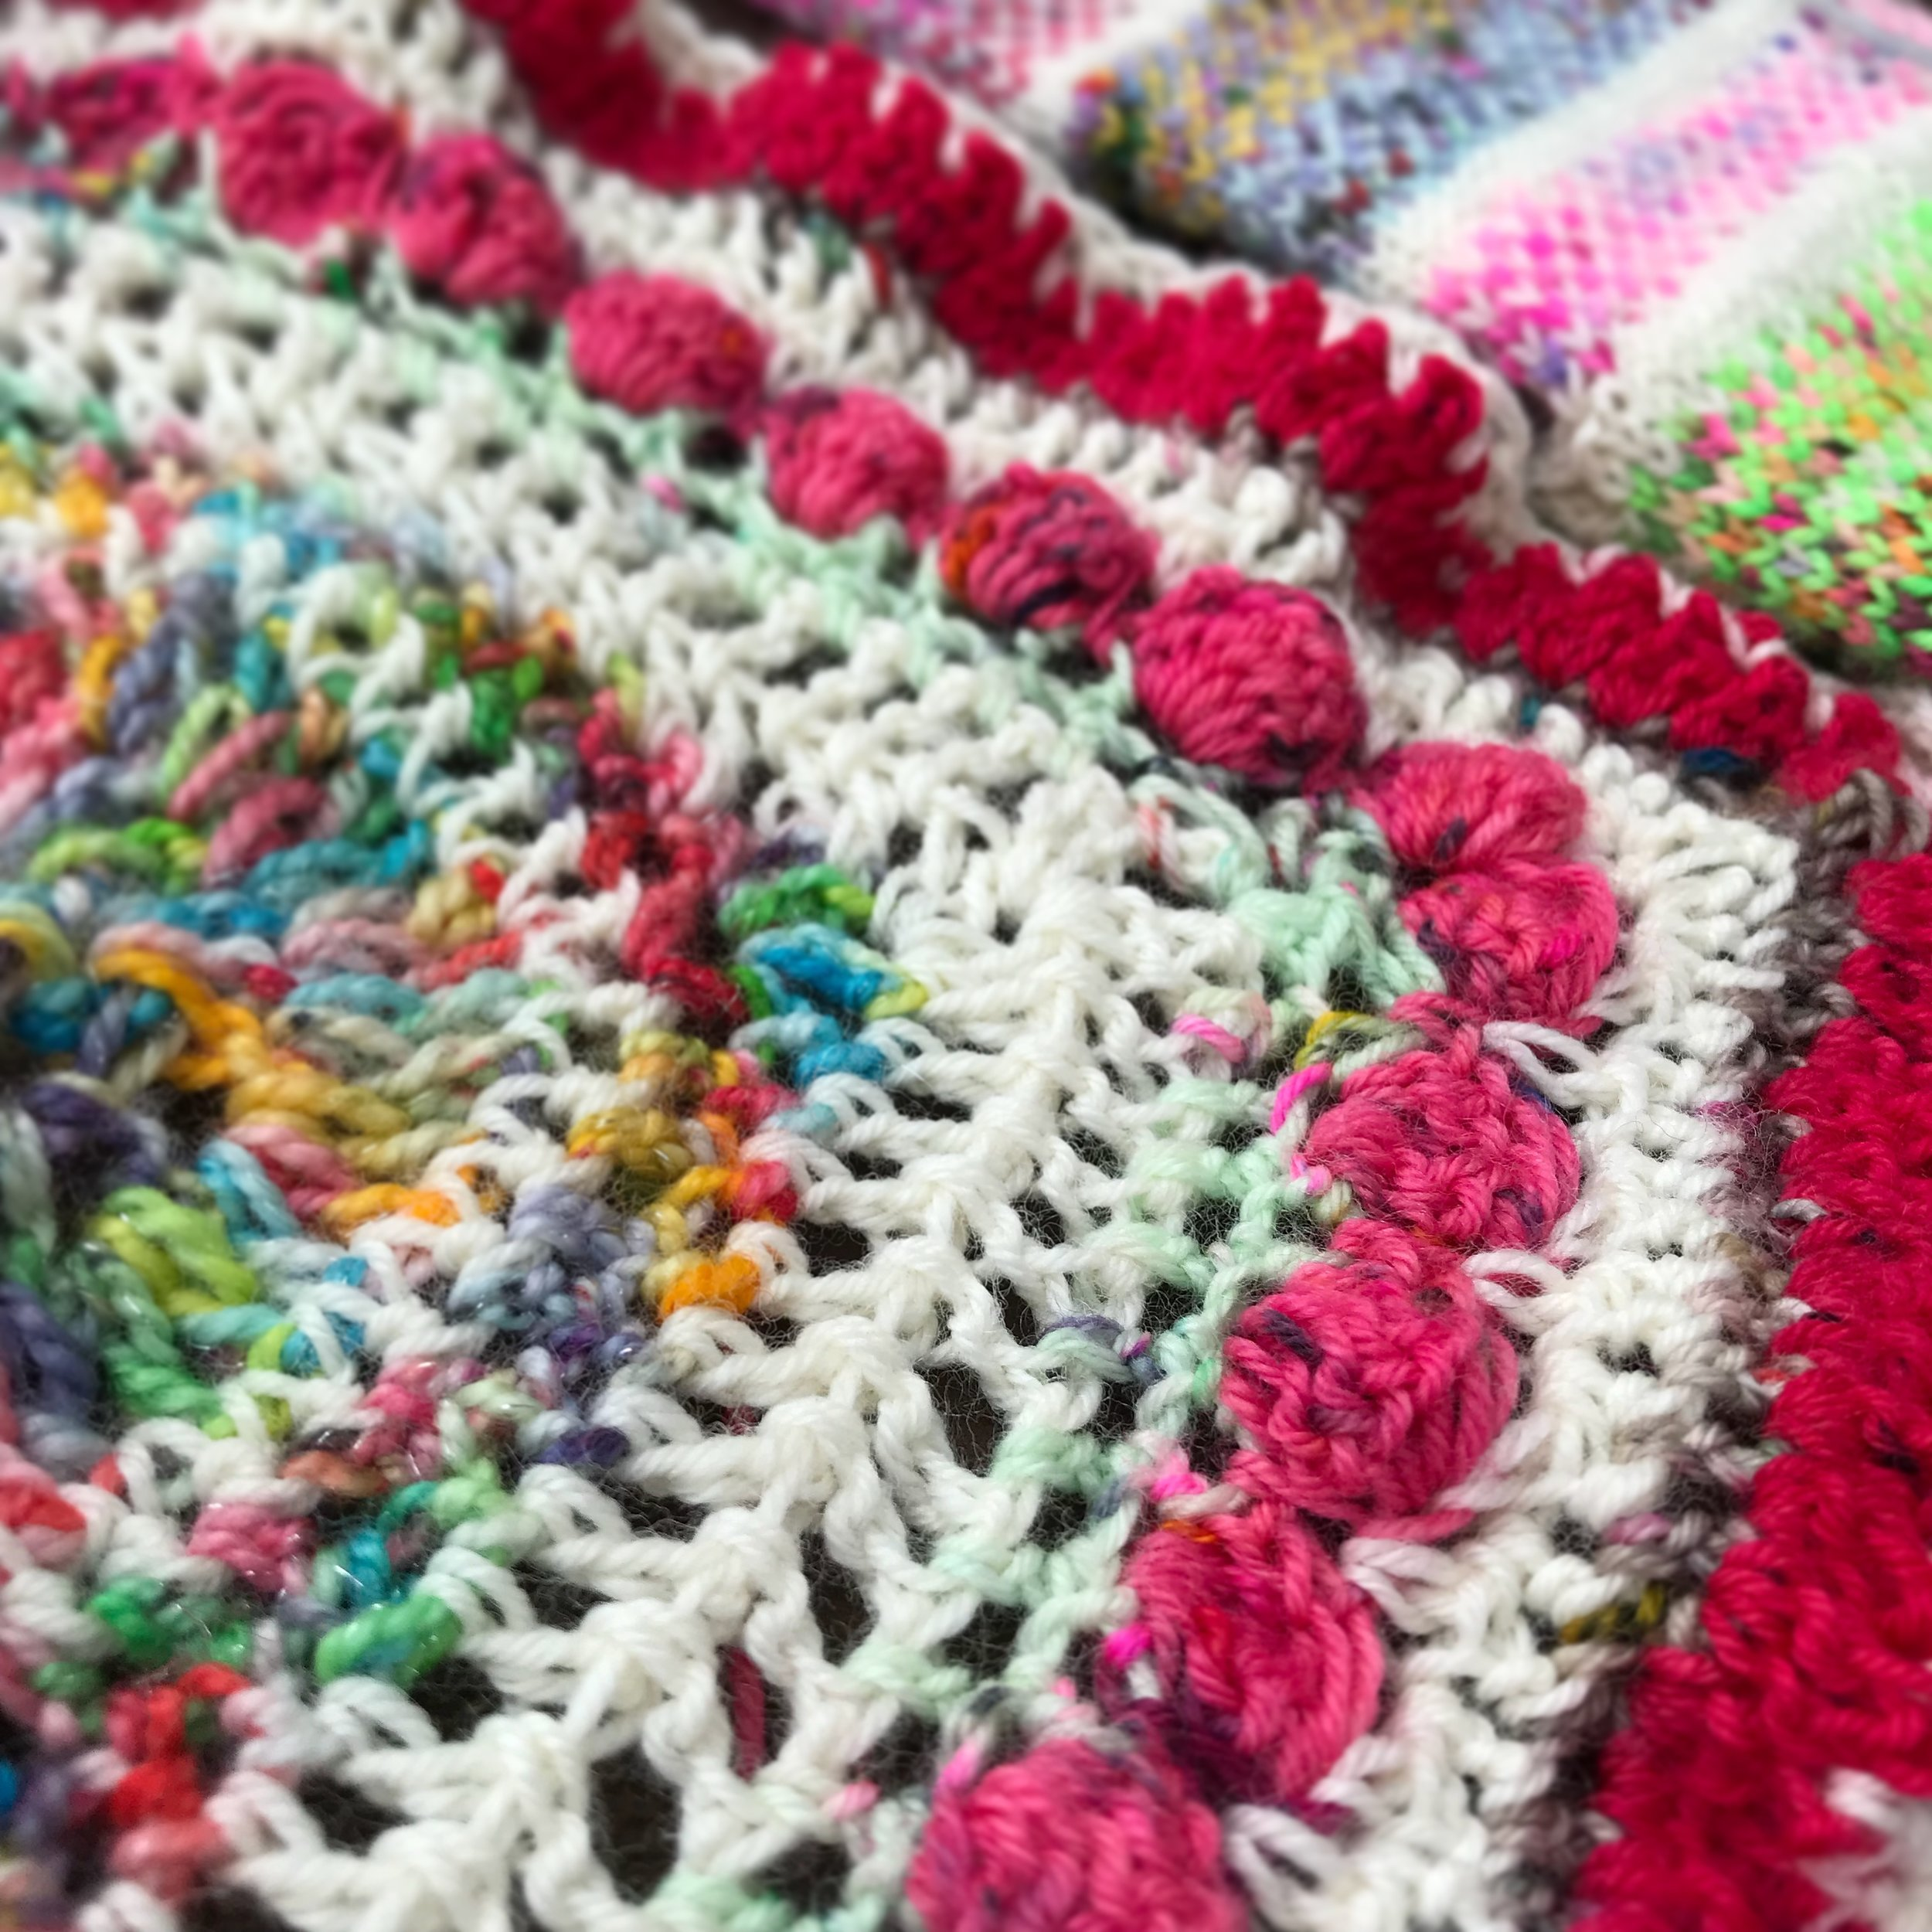 Scrappy Crochet - Nothing lends it self better to working with Wonderfull, scrappy bits of yarn than crochet! Crochet was my first yarn love and it appealed to me mostly due to its stash buster factor! I like to make it up as I go along however, I have found lots of fabulous crochet inspiration which is over on my Pinterest.